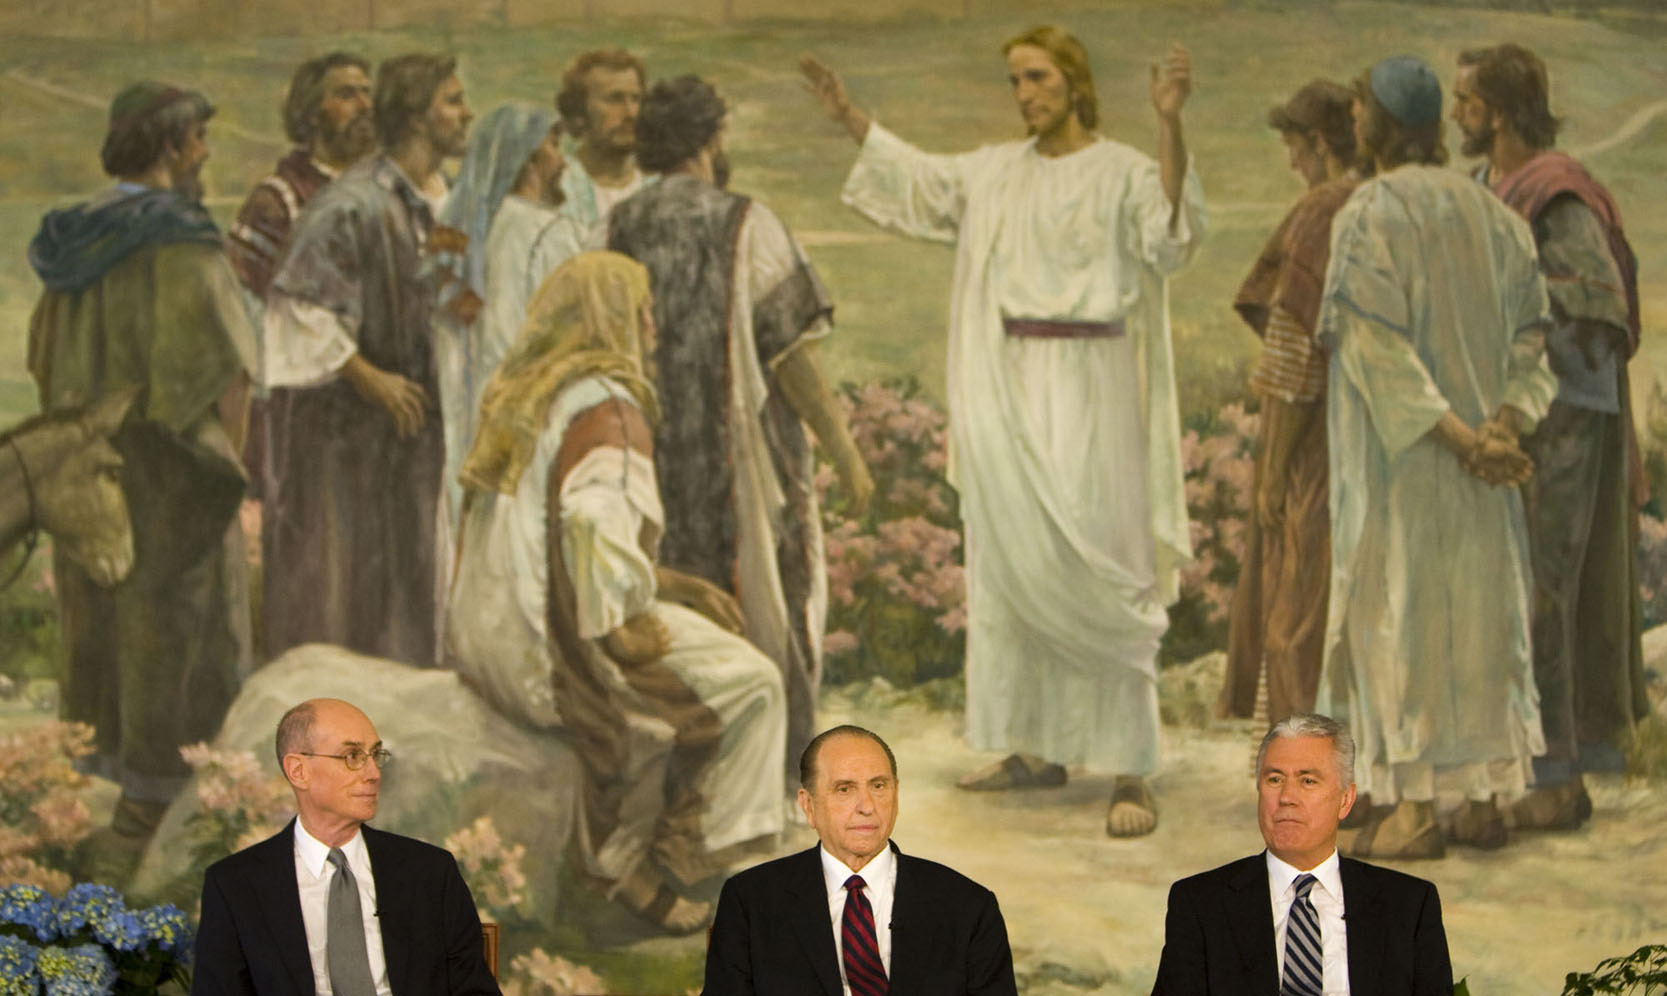 (Steve Griffin  |  The Salt Lake Tribune) President Thomas S. Monson (center) is flanked by Henry B. Eyring (left) and Dieter F. Uchtdorf (right) after Monson was named 16th president of the LDS Church on Feb. 4, 2008.